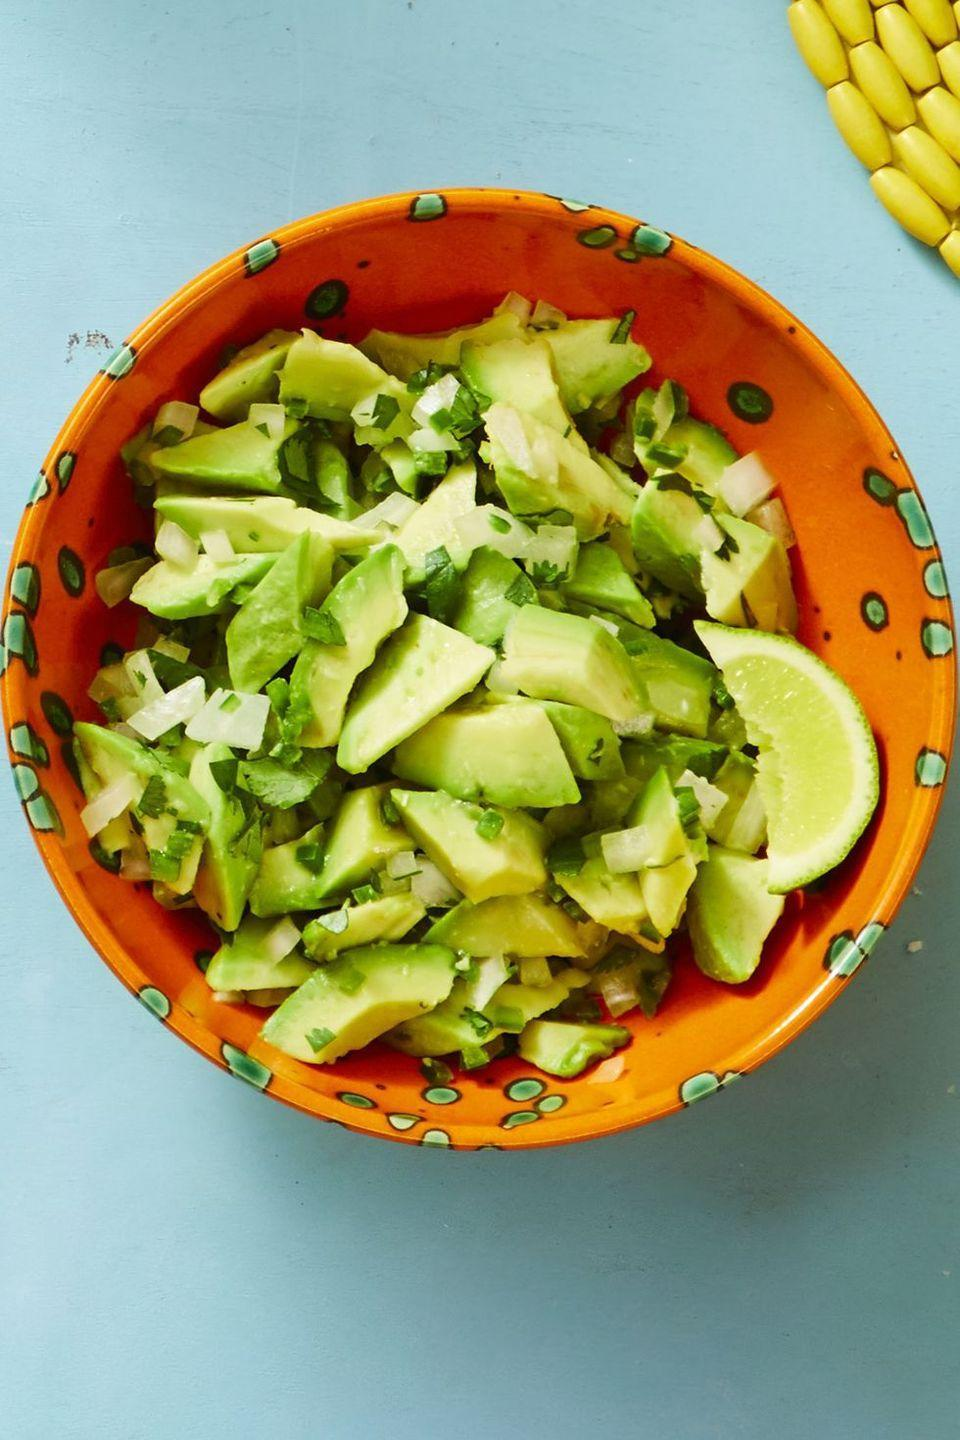 "<p>Creamy meets chunky in this zesty, spicy guacamole that's always a crowd-pleaser.</p><p><em><a href=""https://www.goodhousekeeping.com/food-recipes/easy/a19864878/chunky-guacamole-recipe/"" rel=""nofollow noopener"" target=""_blank"" data-ylk=""slk:Get the recipe for Chunky Guacamole »"" class=""link rapid-noclick-resp"">Get the recipe for Chunky Guacamole »</a></em></p>"